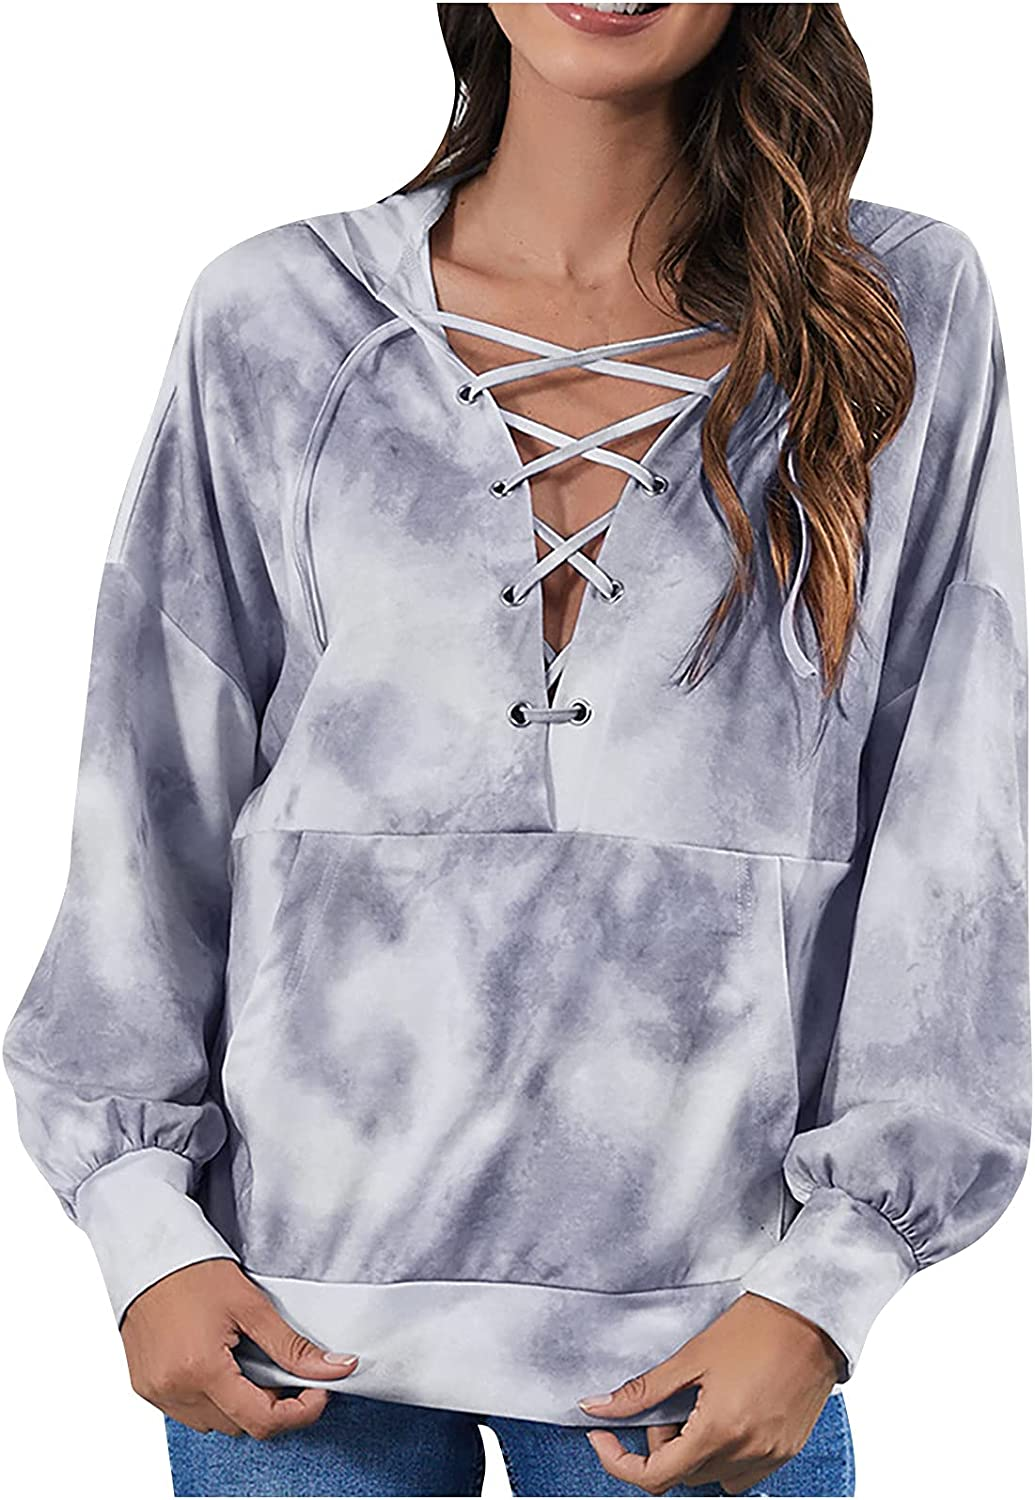 Women's Hoodies Tops Sexy Adjustable Strappy V-Neck Pullover Tie-Dye Print Pocket Sweater Casual Fashion Blouse